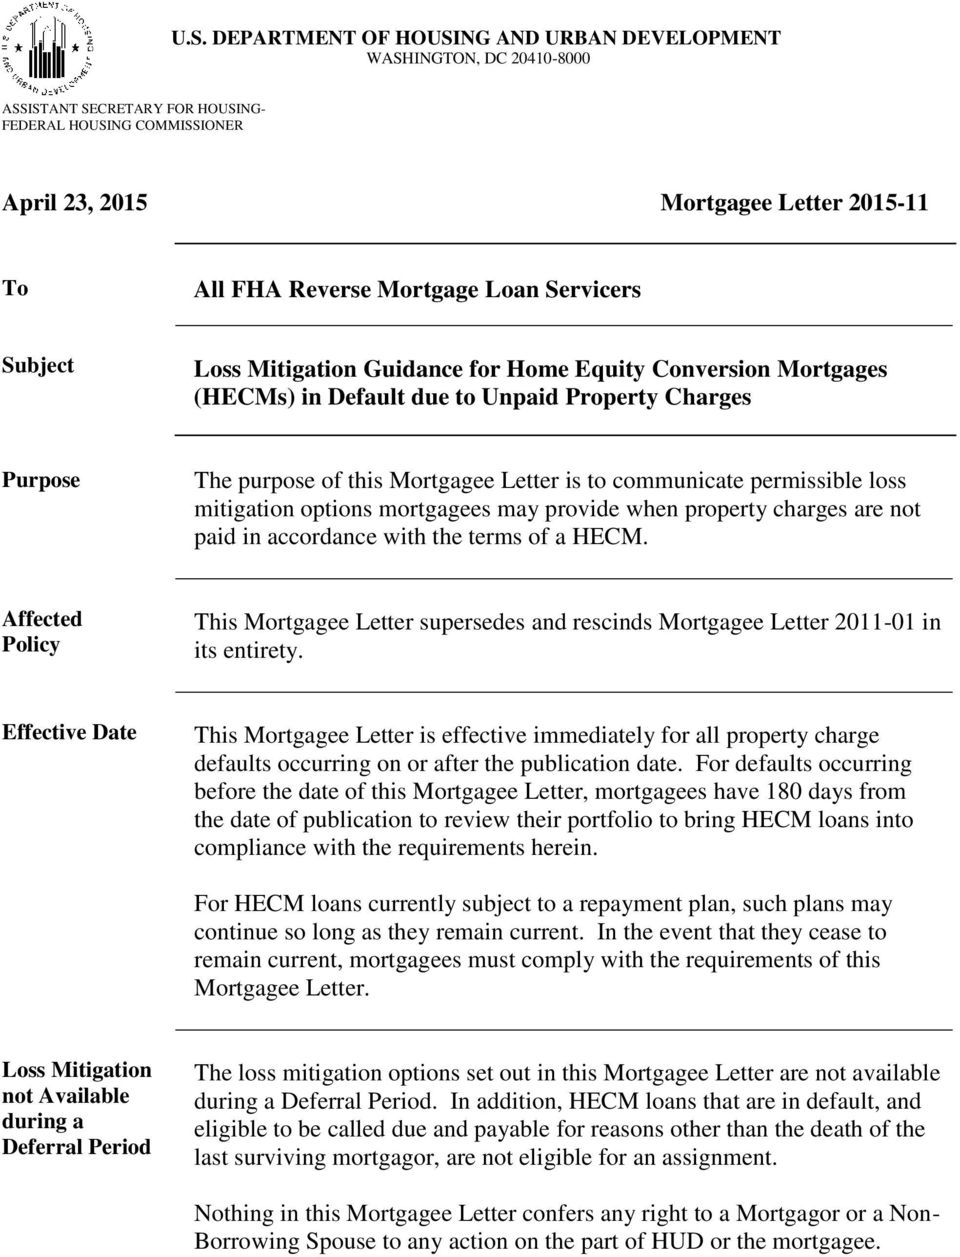 communicate permissible loss mitigation options mortgagees may provide when property charges are not paid in accordance with the terms of a HECM.